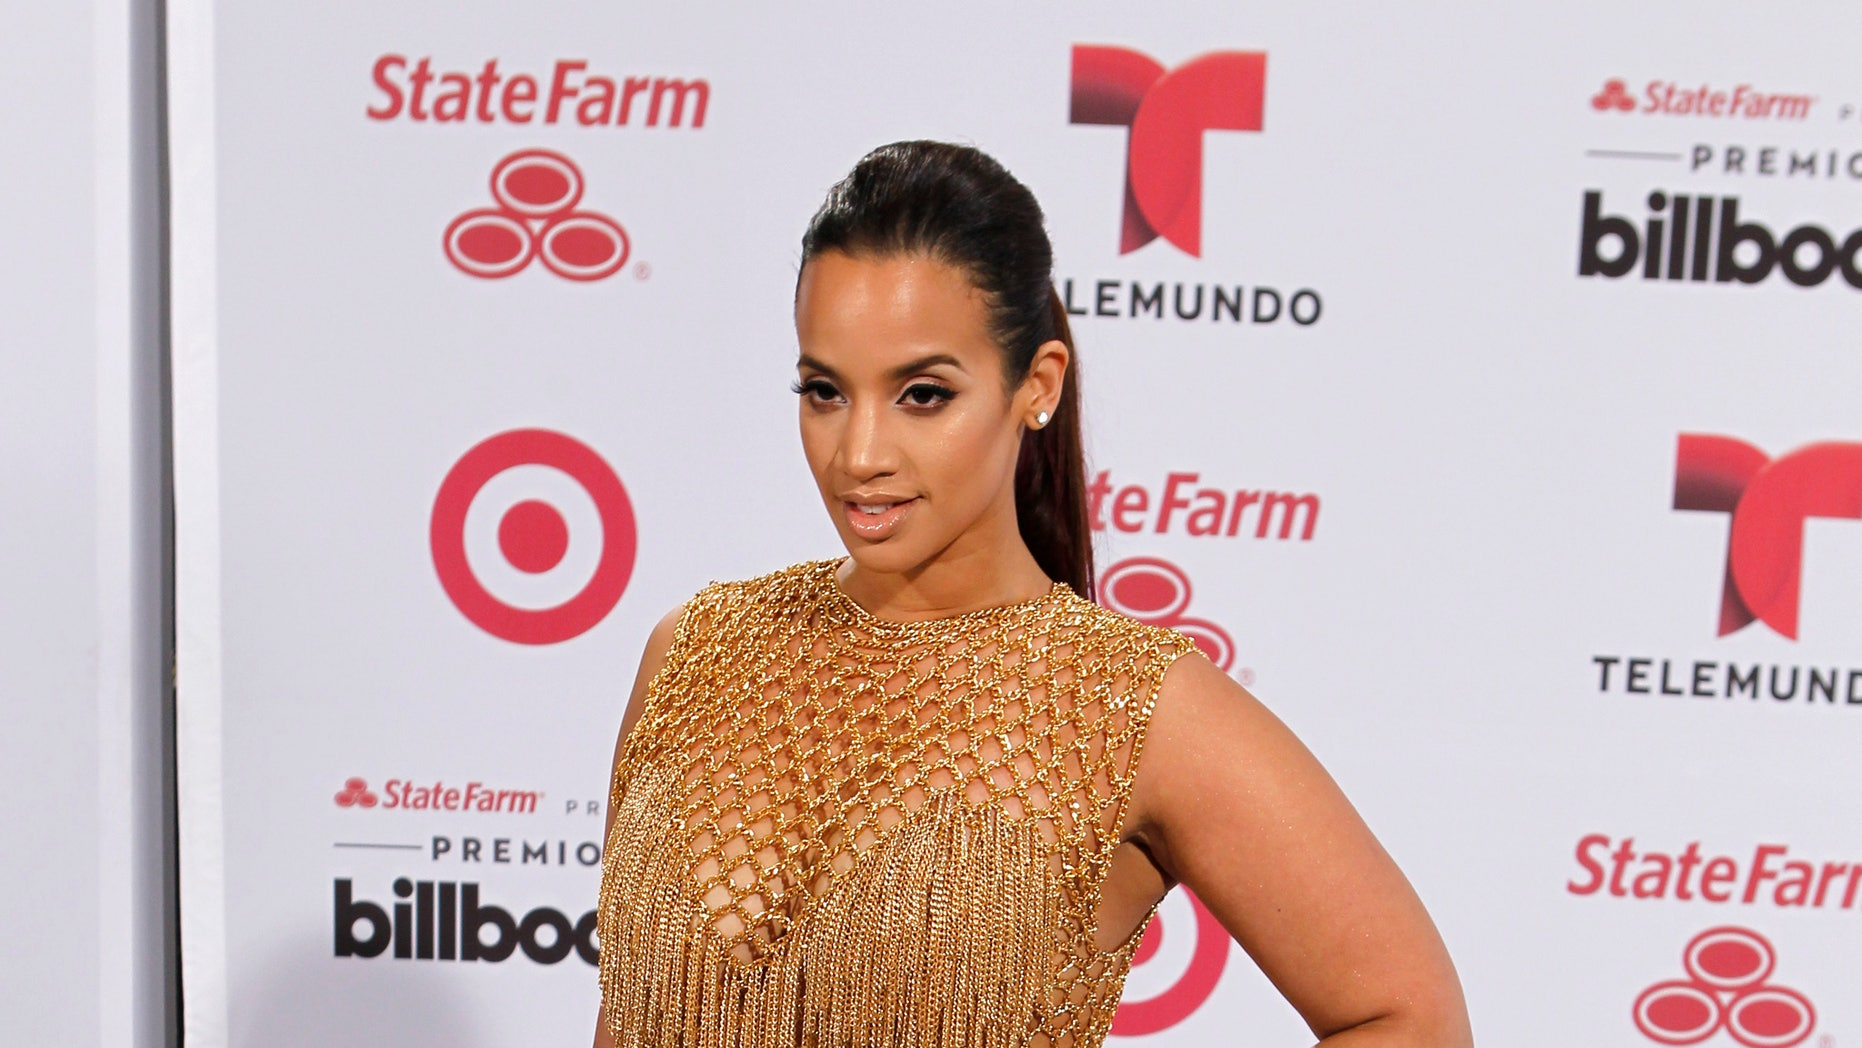 Actress Dascha Polanco arrives at the 2015 Latin Billboard Awards in Coral Gables, Florida April 30, 2015. REUTERS/Joe Skipper - RTX1B1IQ